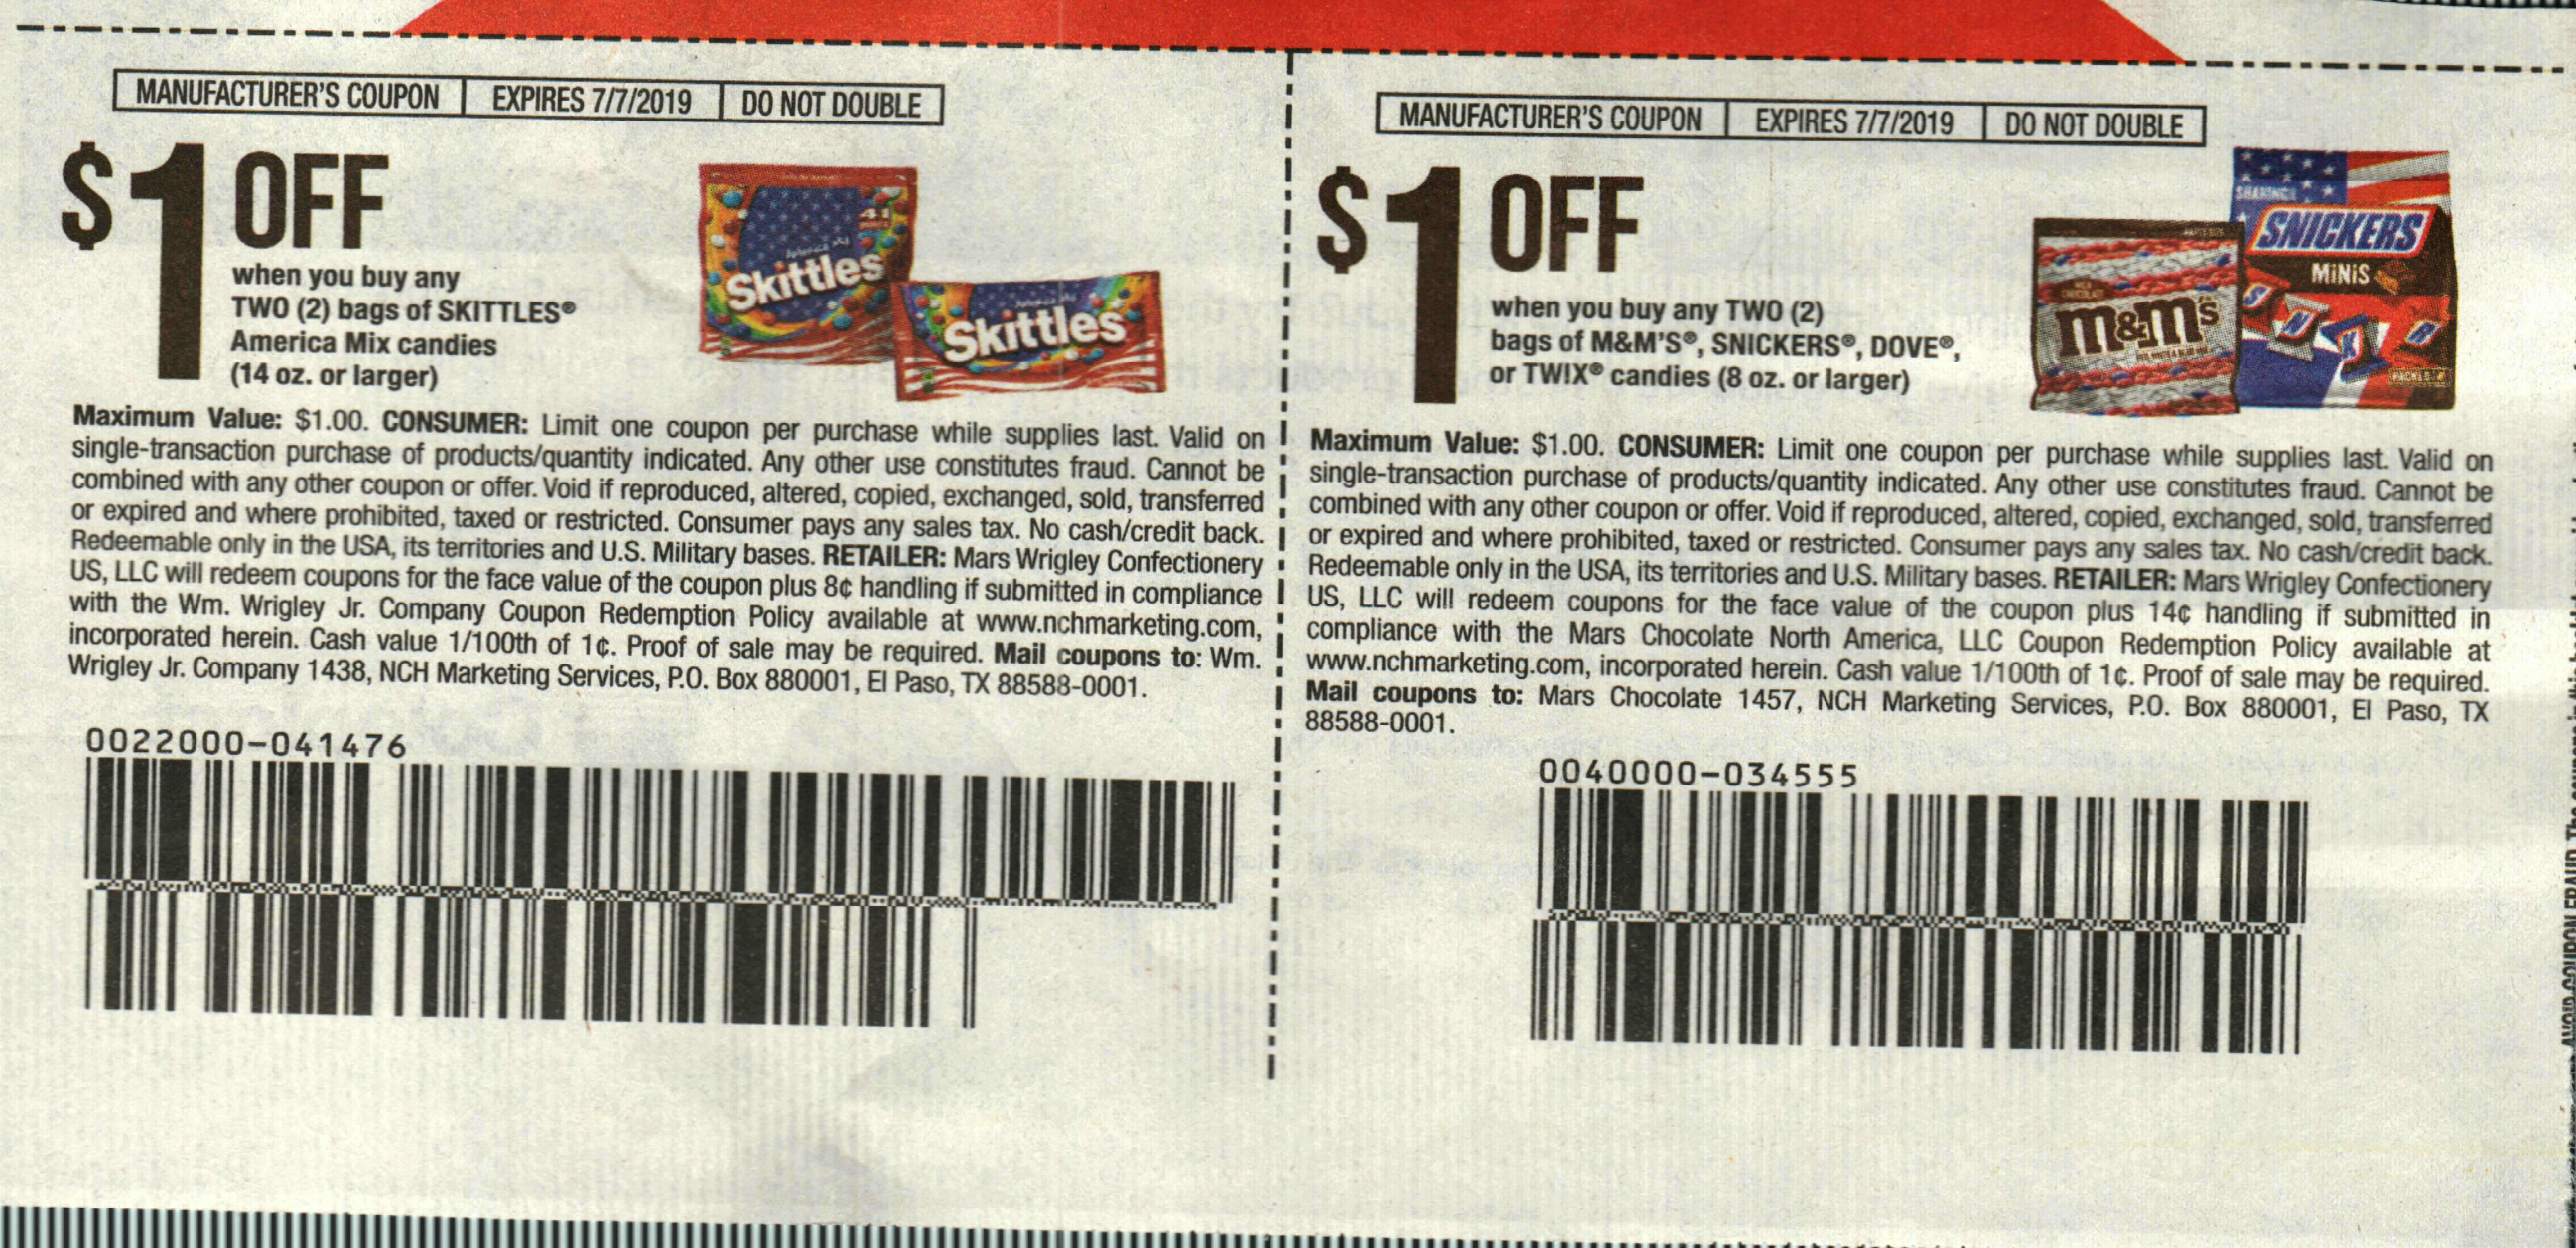 15 Coupons $1/2 Skittles America Mix + $1/2 M&M's Snickers Dove or Twix 8oz Candies DND 7/7/2019